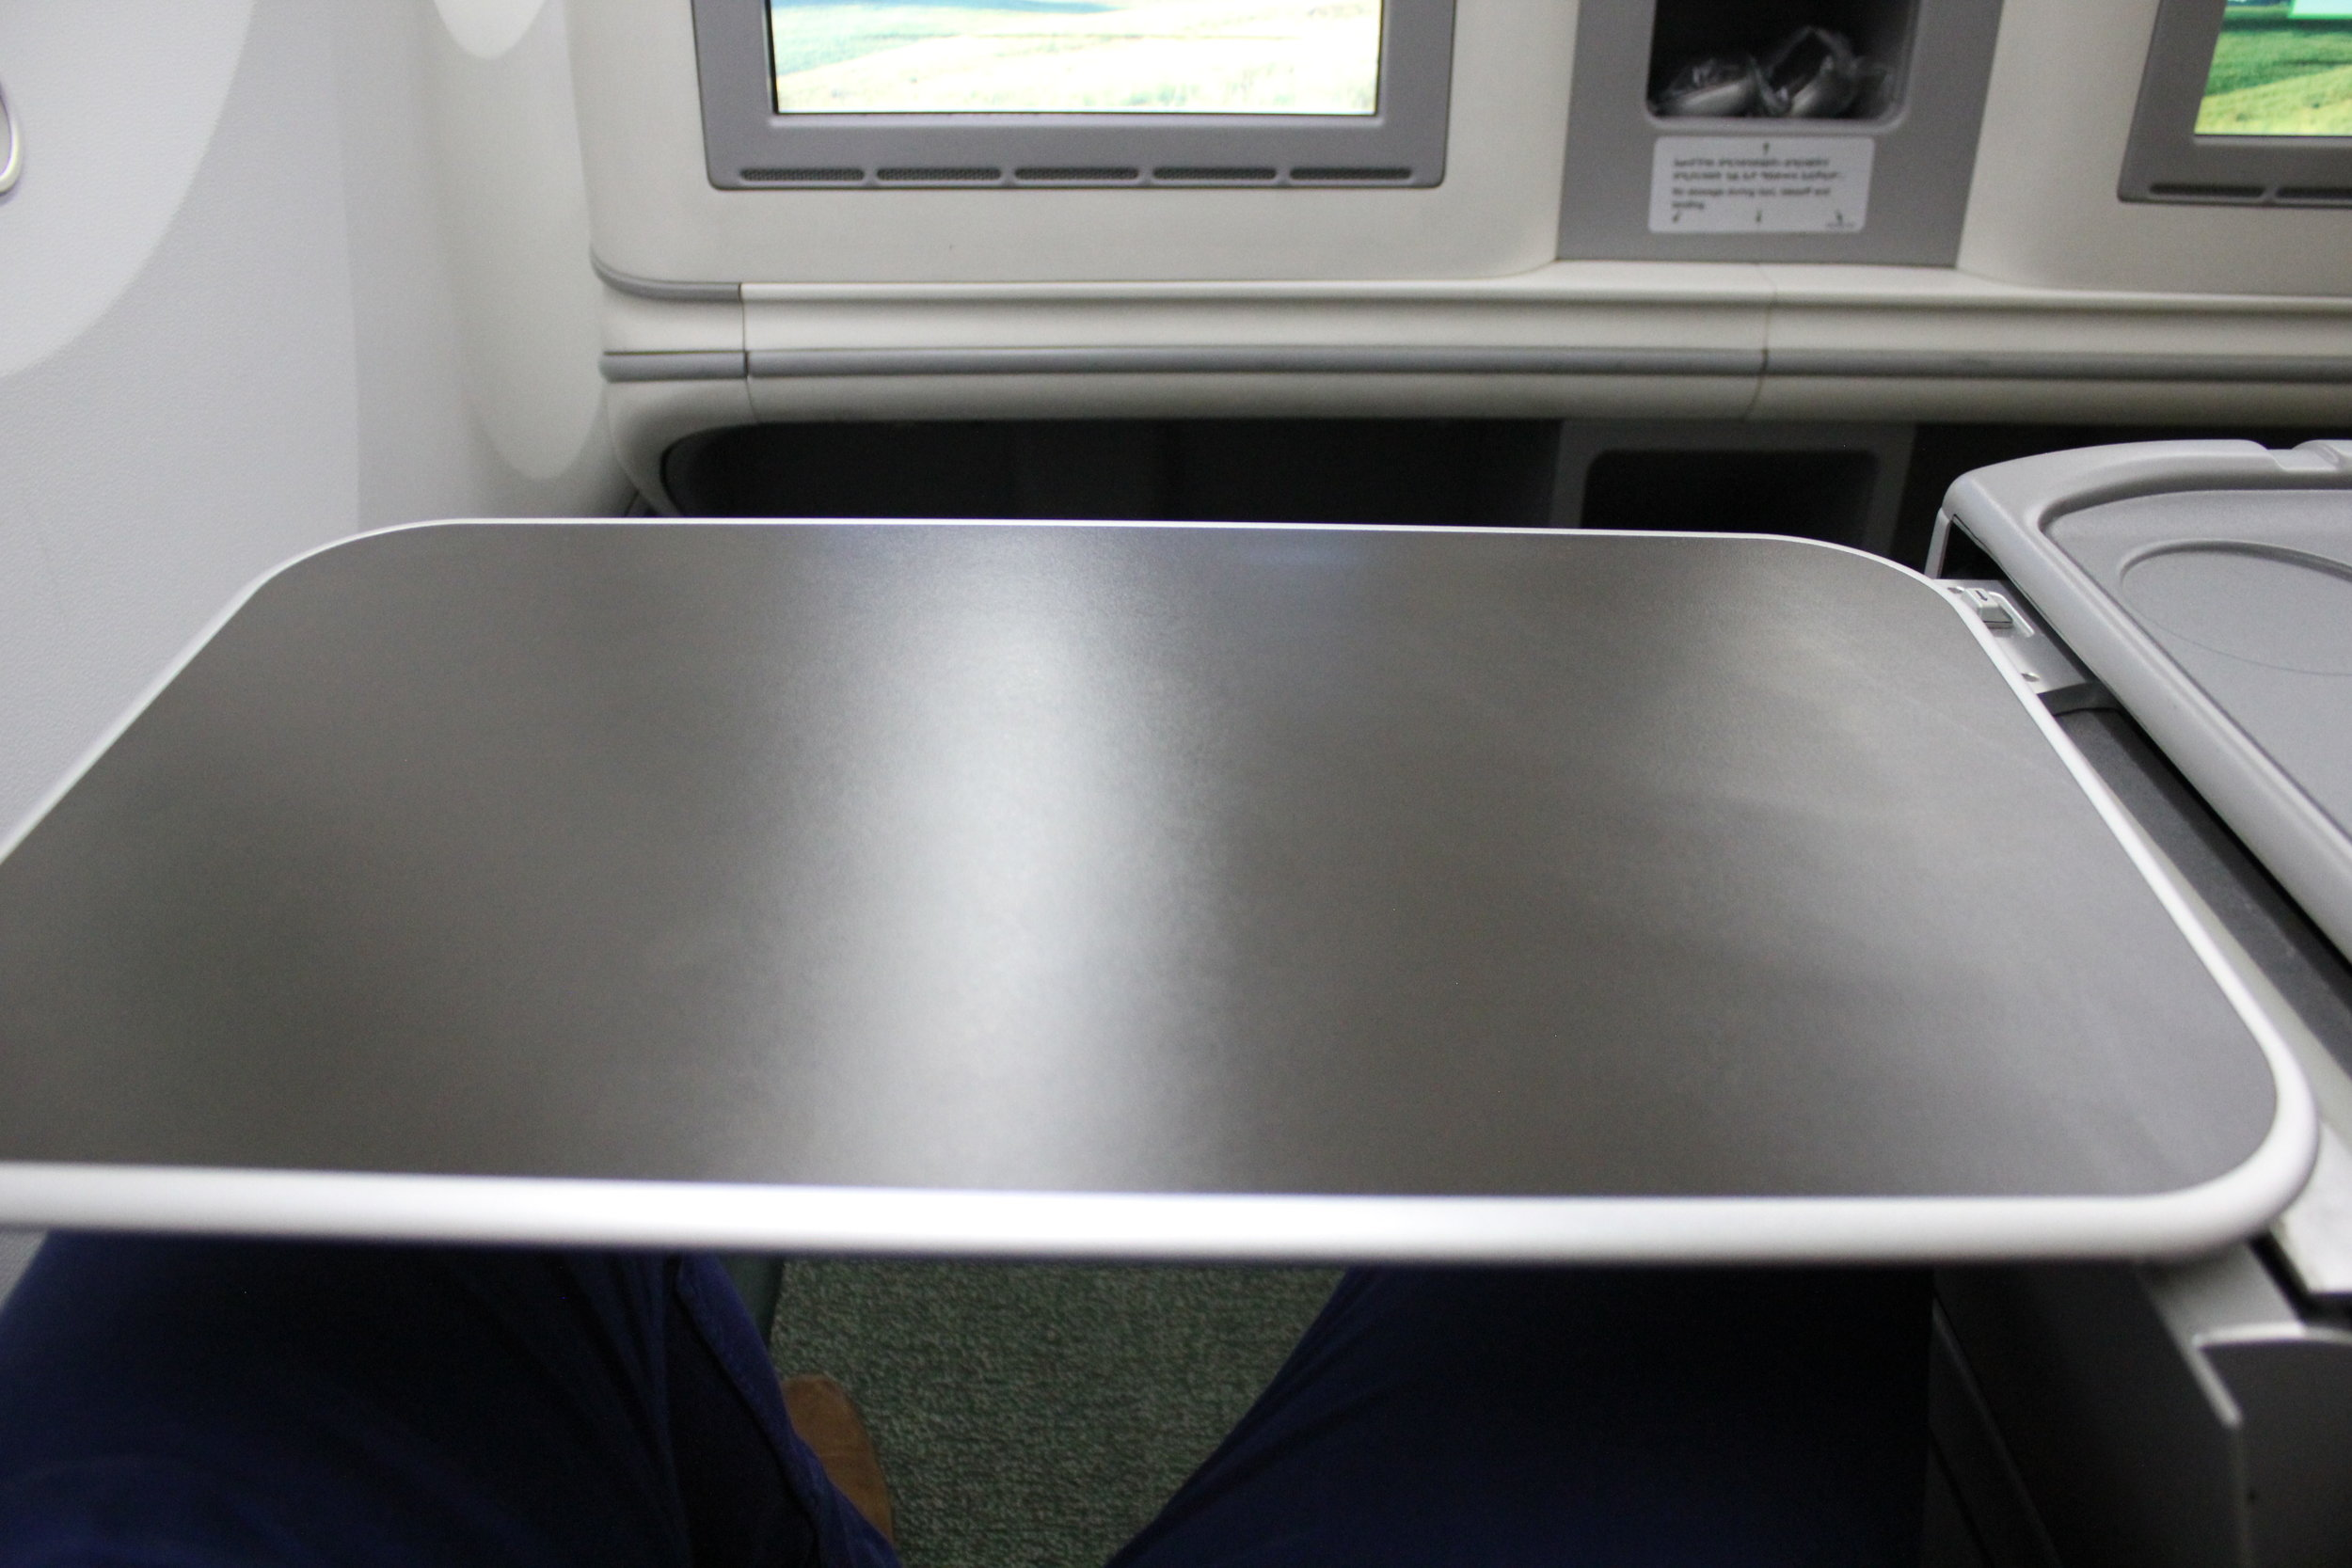 Ethiopian Airlines business class – Tray table